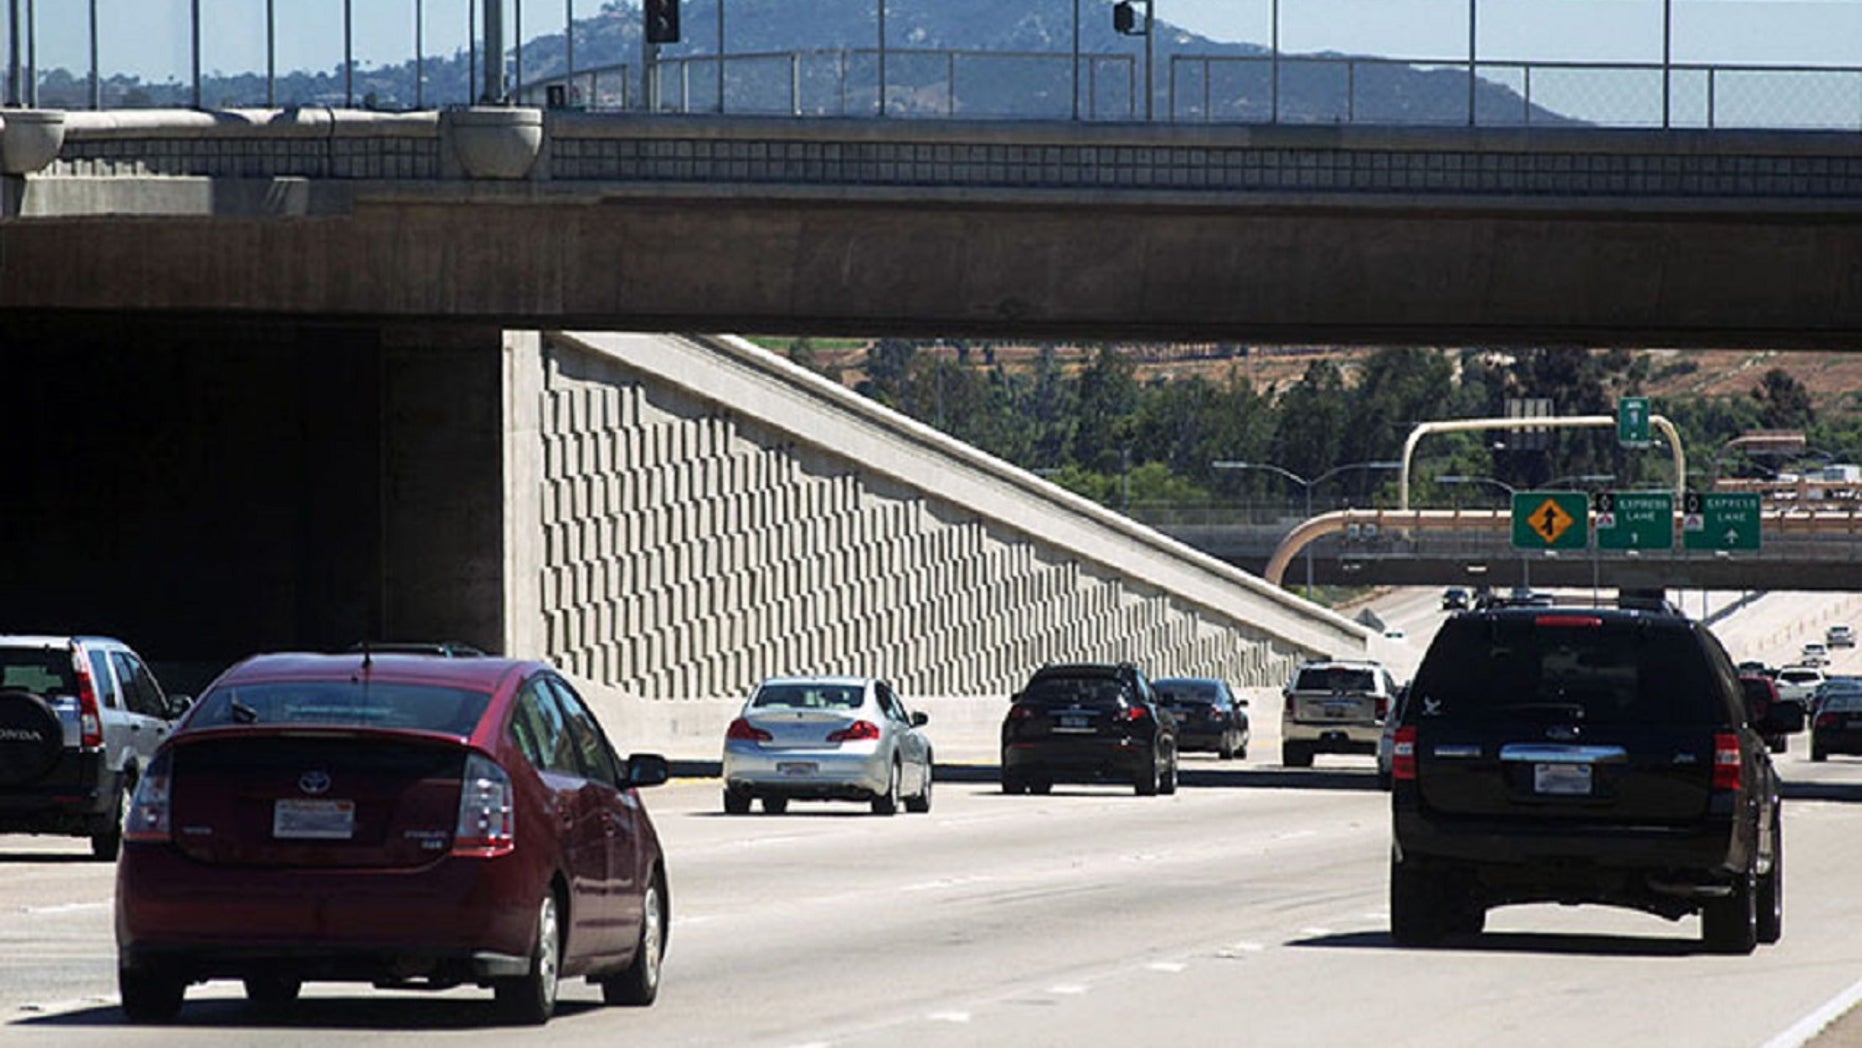 More than 200,000 vehicles low- and zero-emission vehicles are set to lose their decals that allow drivers to use the car-pool lane without a passenger.